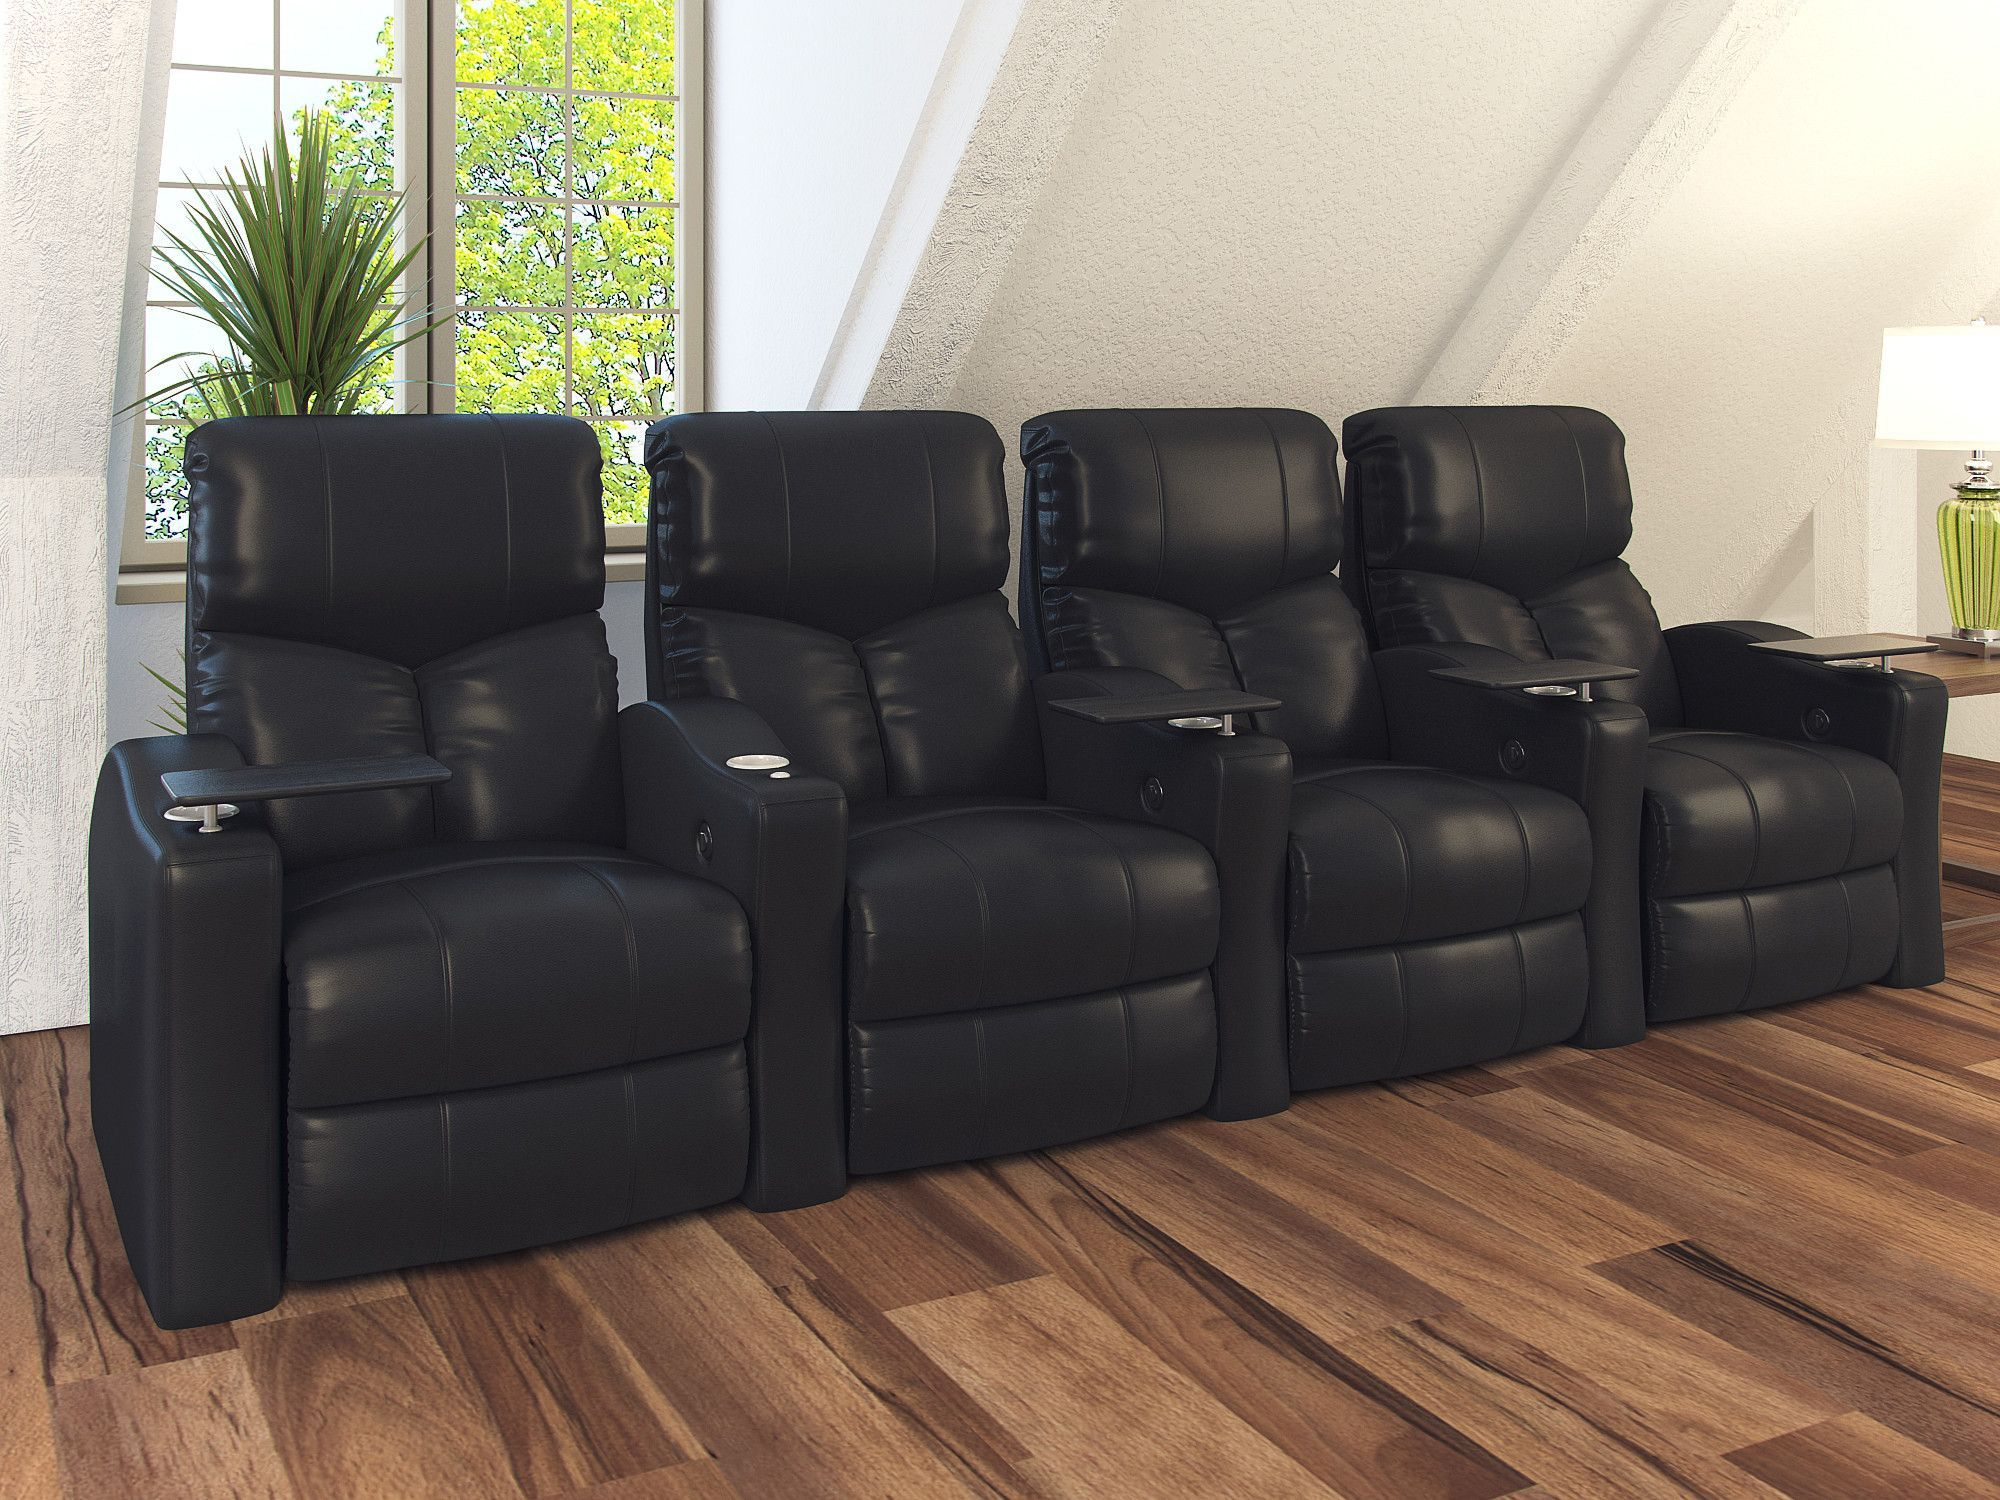 Features space saving design enabling you to fit more seats in a